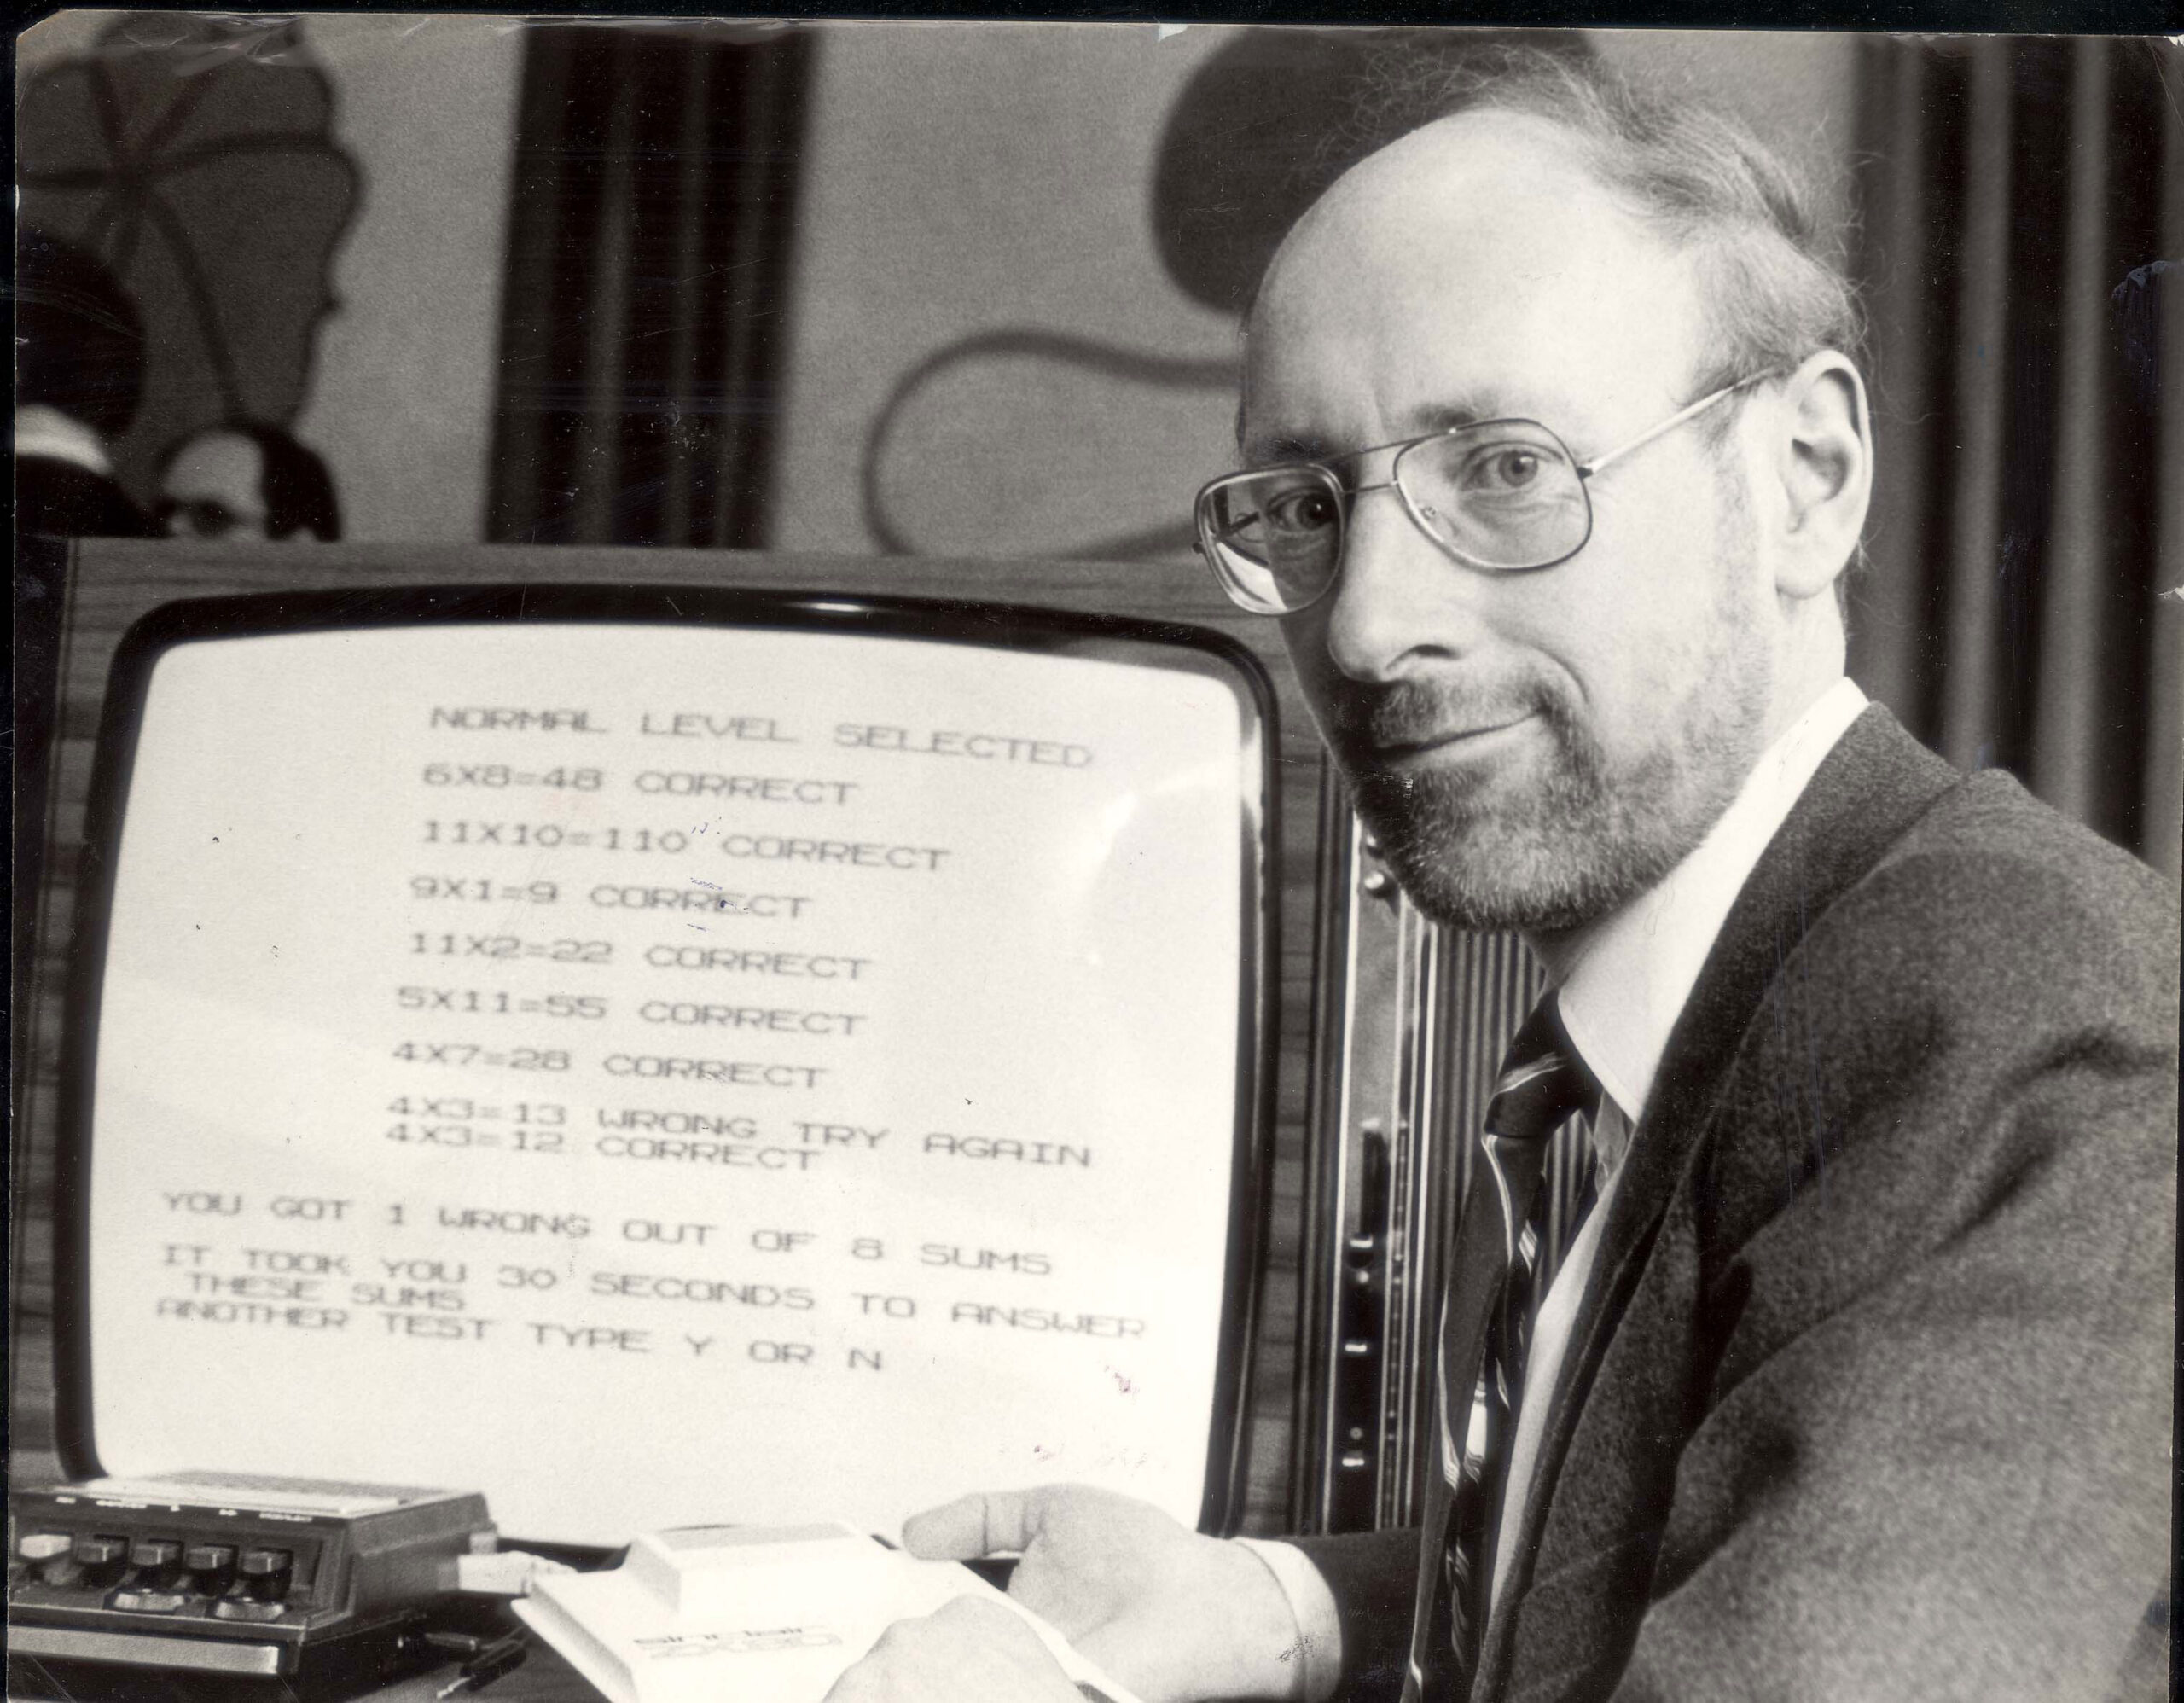 <i>Phillip Jackson/Daily Mail/Shutterstock</i><br/>Clive Sinclair